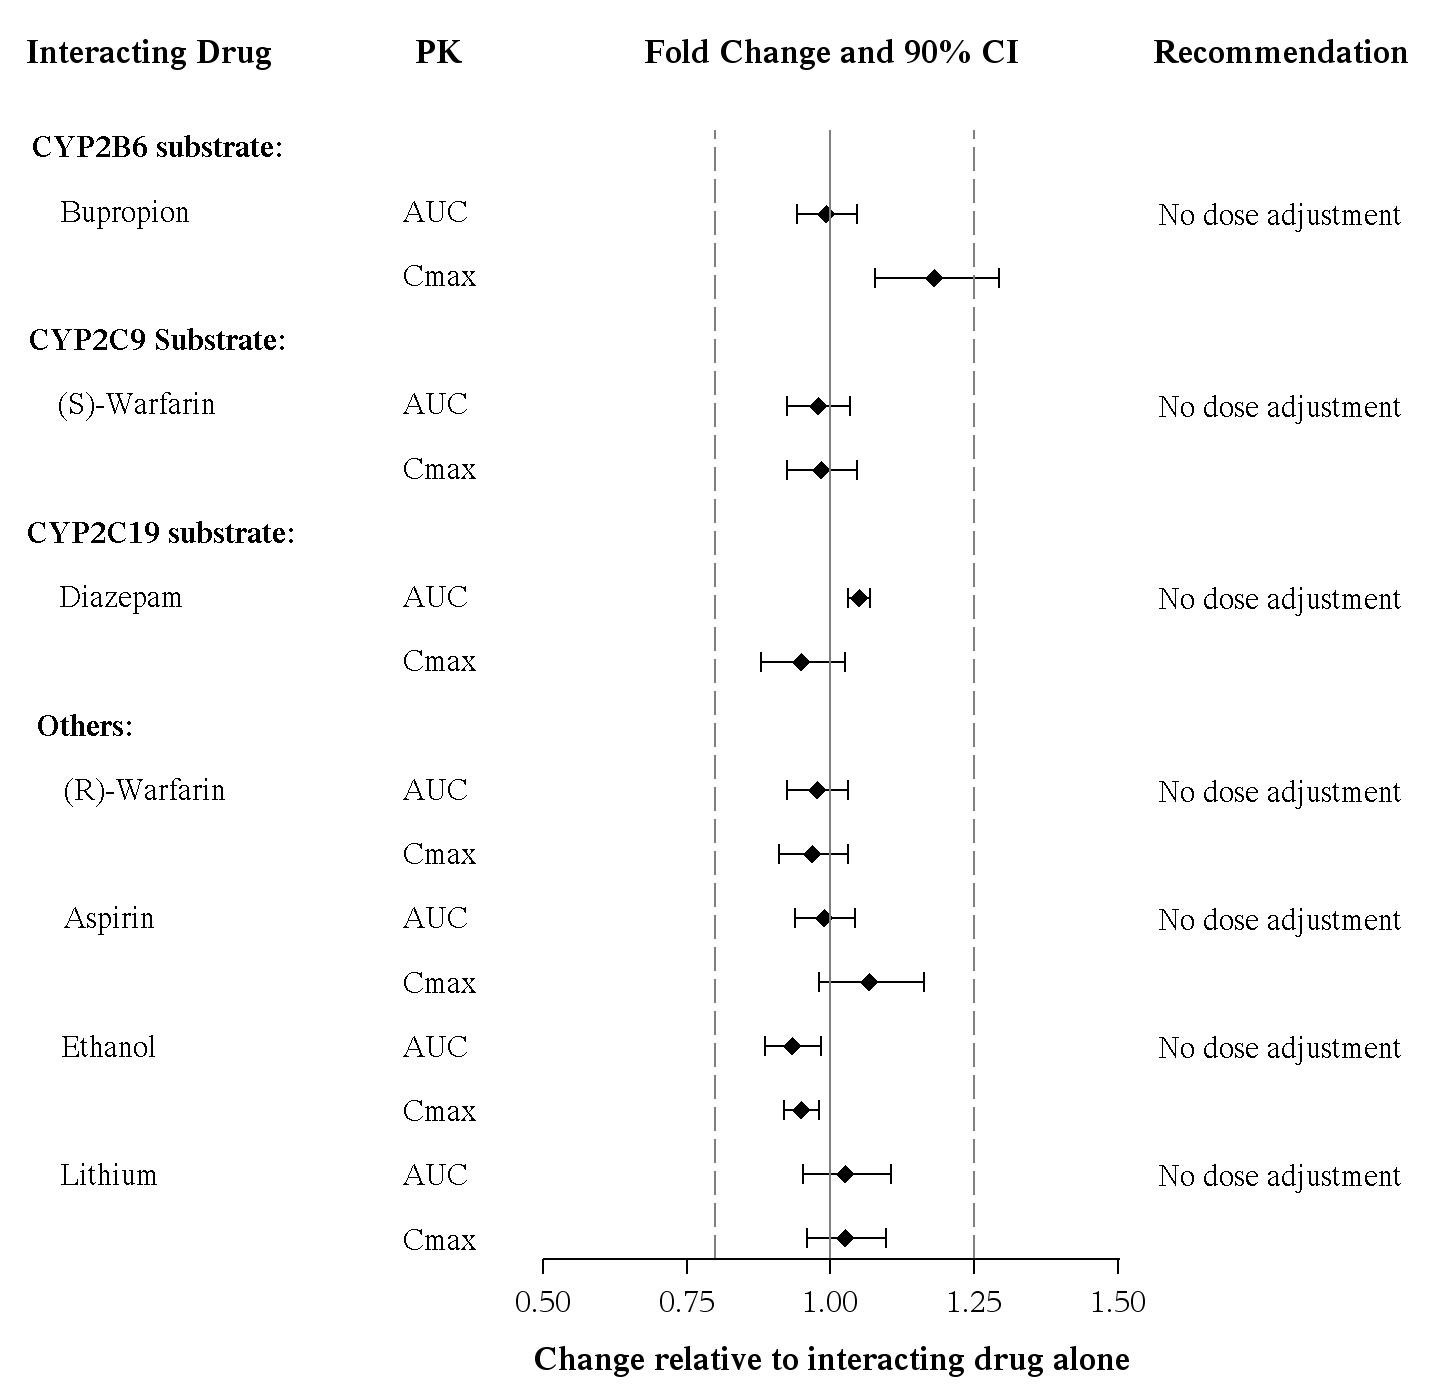 Impact of Vortioxetine on PK of Other Drugs